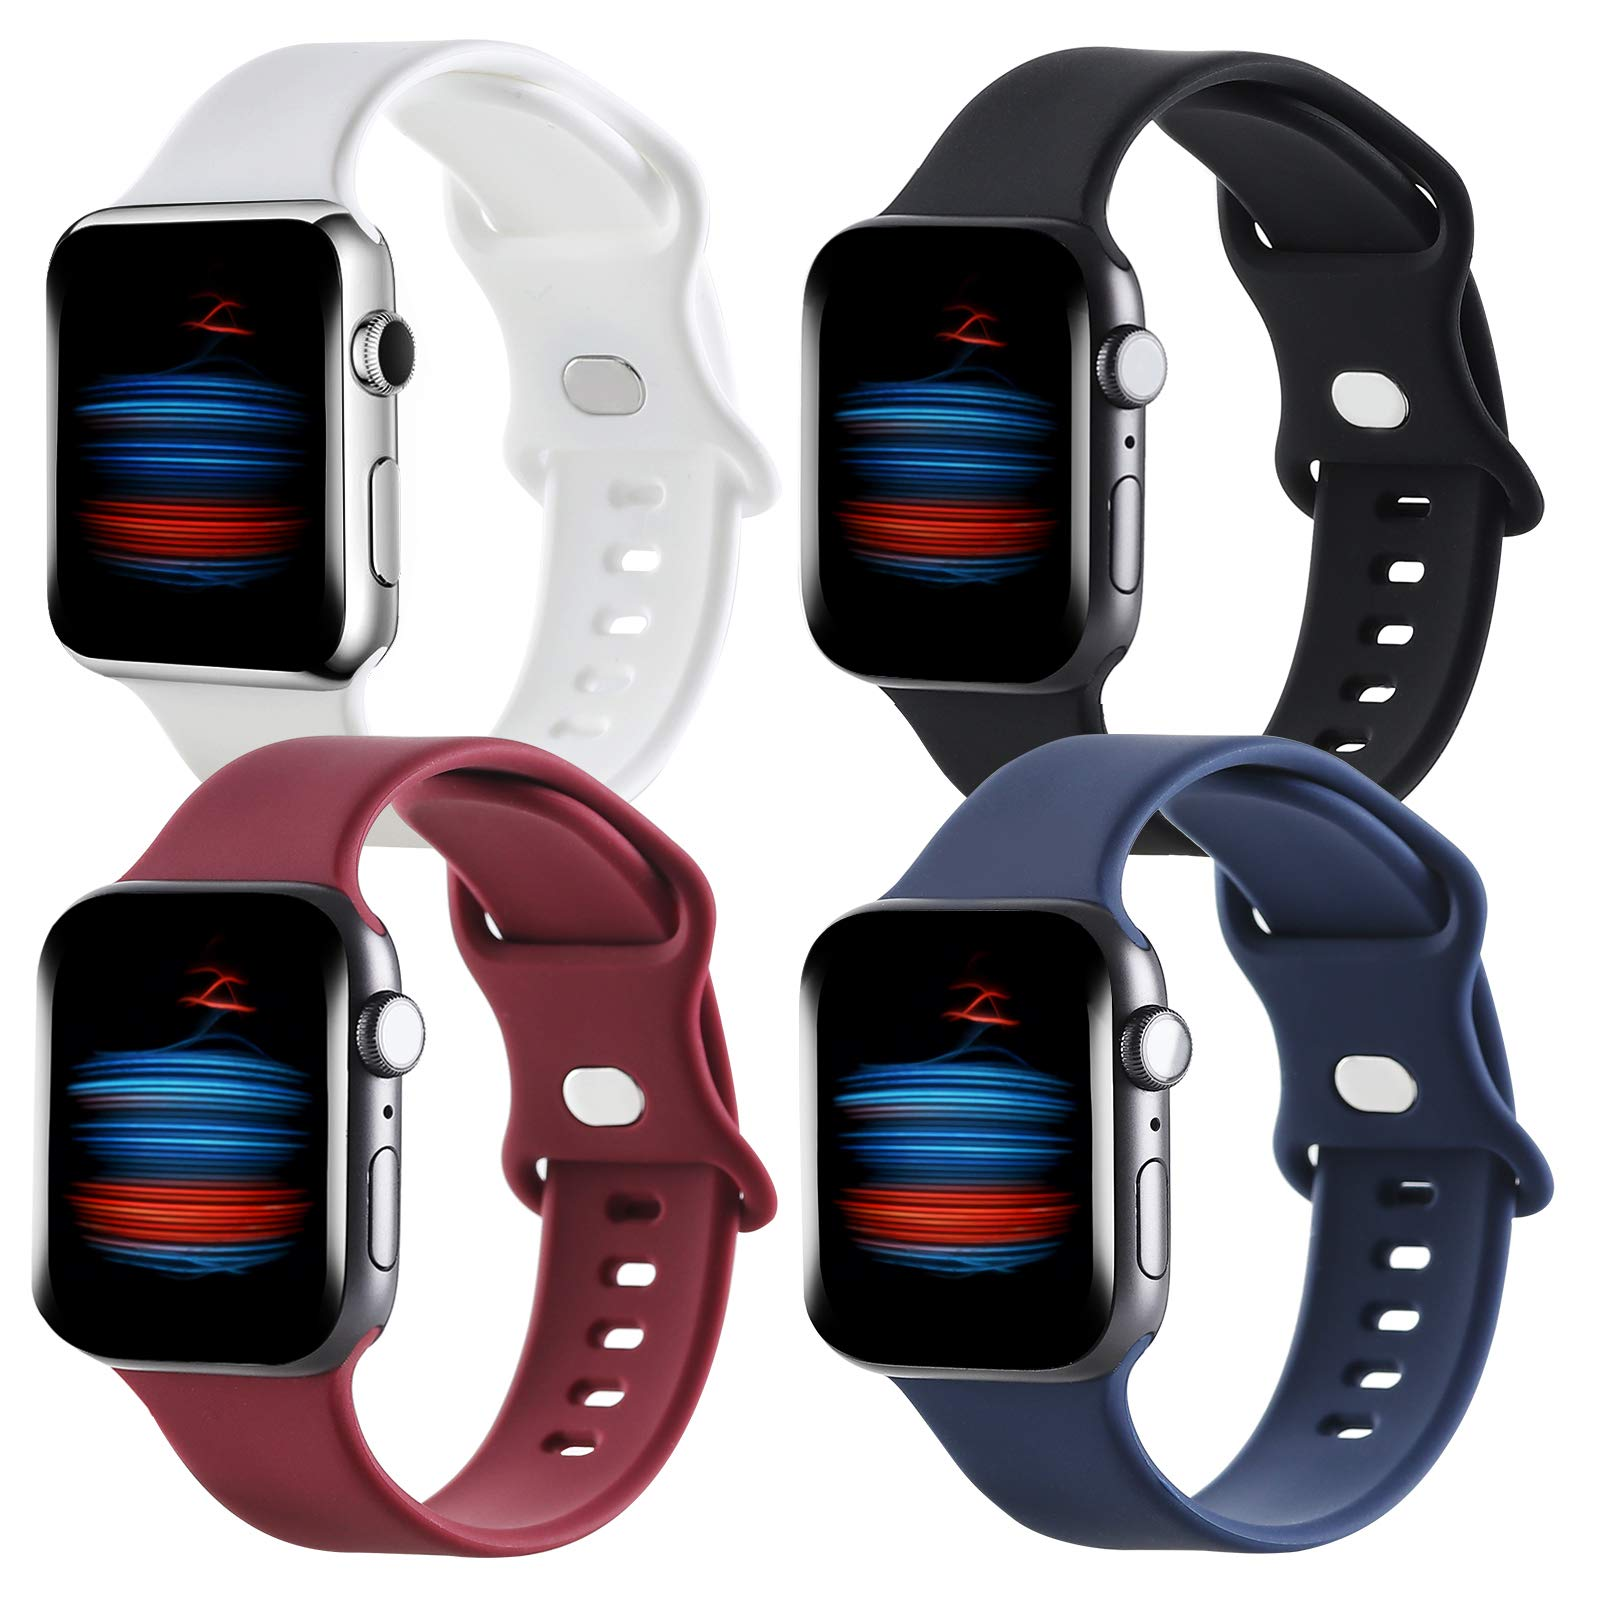 Gleiven 4 Pack Compatible with Apple Watch Band 38mm 40mm,Sport Silicone Soft Replacement Band Compatible for Apple Watch Series 6/5/4/3/2/1 (Black/Navy Blue/White/Wine Red, 38mm(40mm))